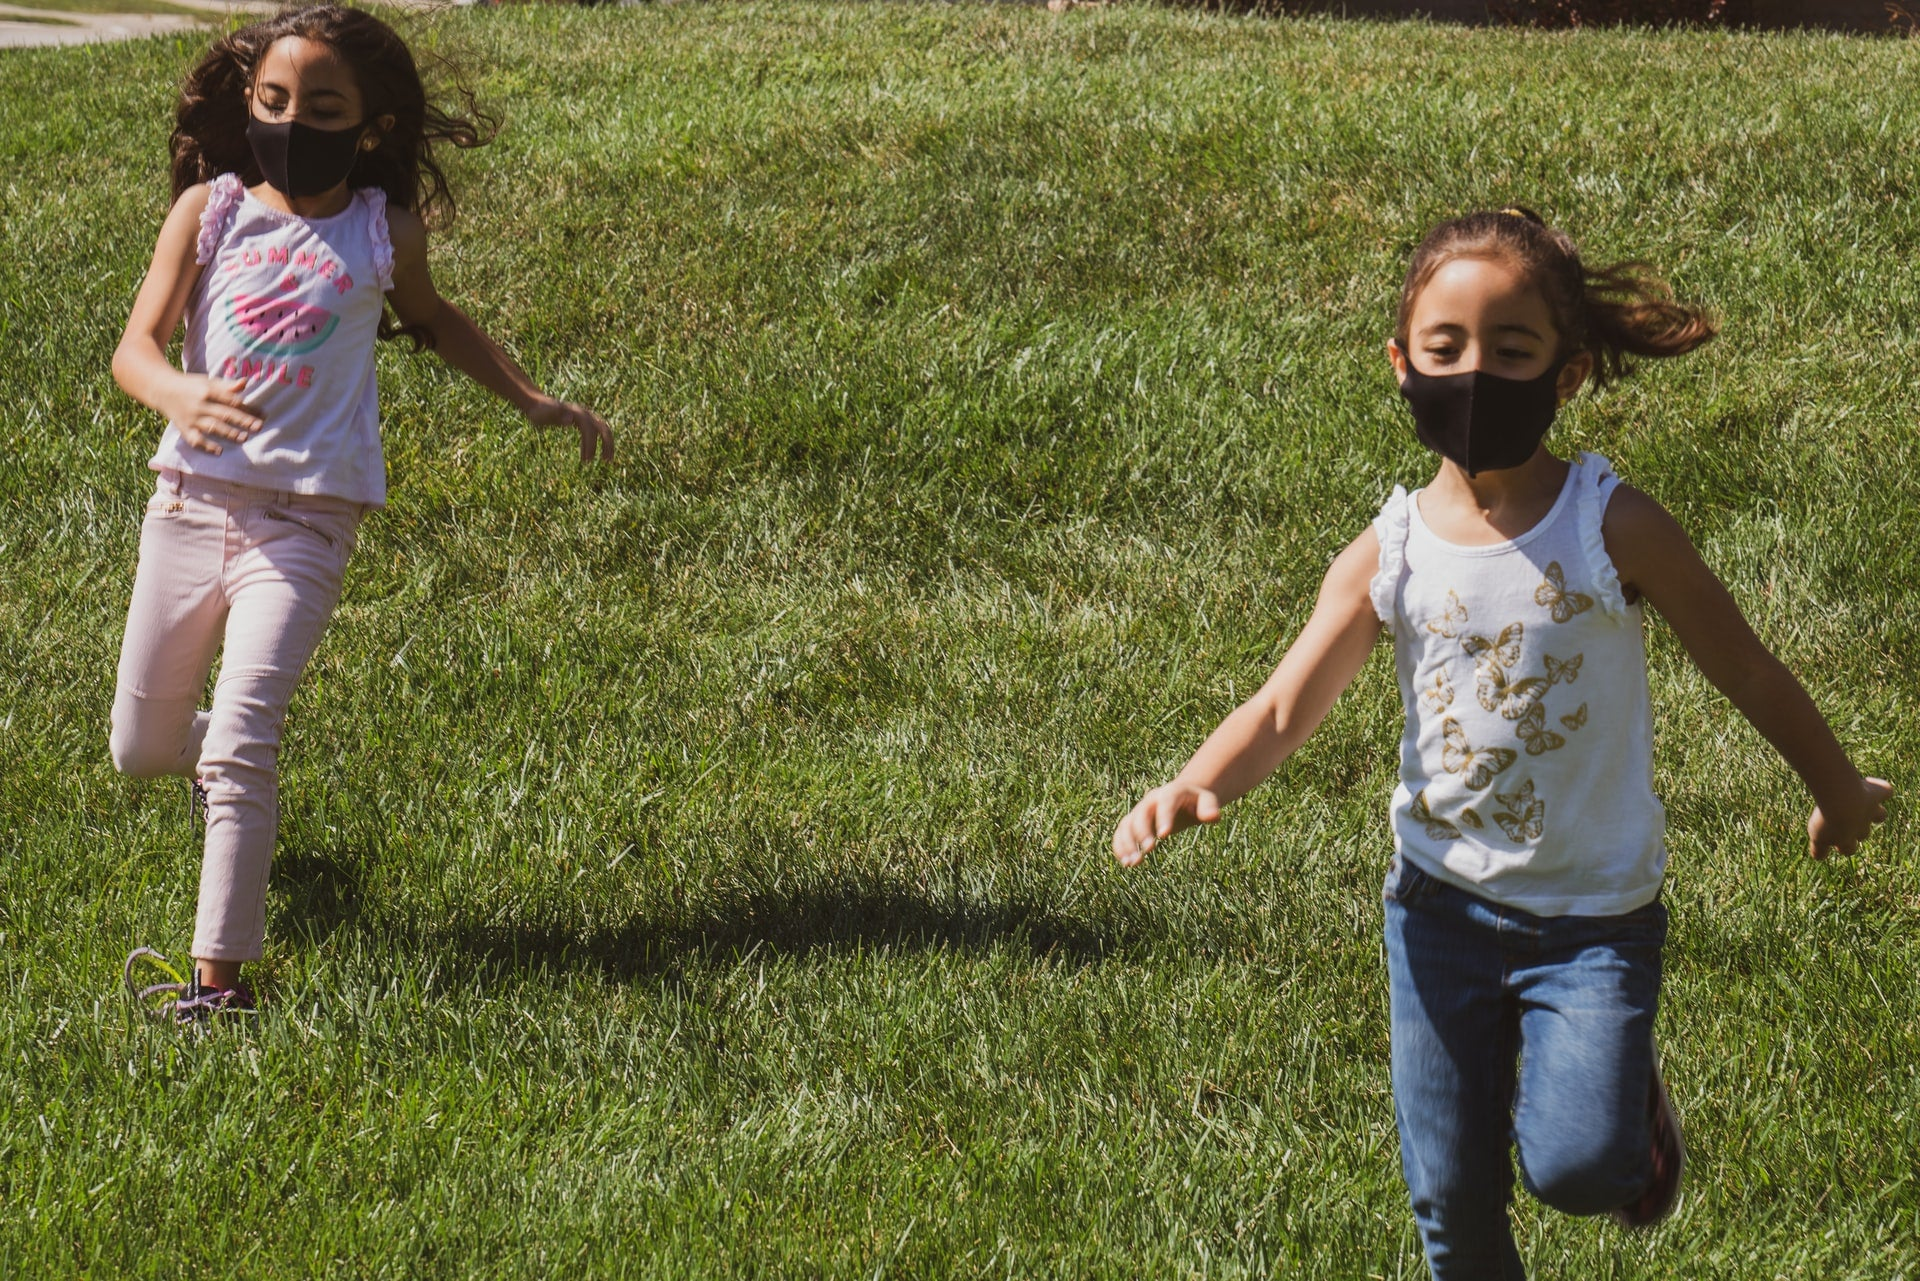 Two kids running on a lawn with masks on